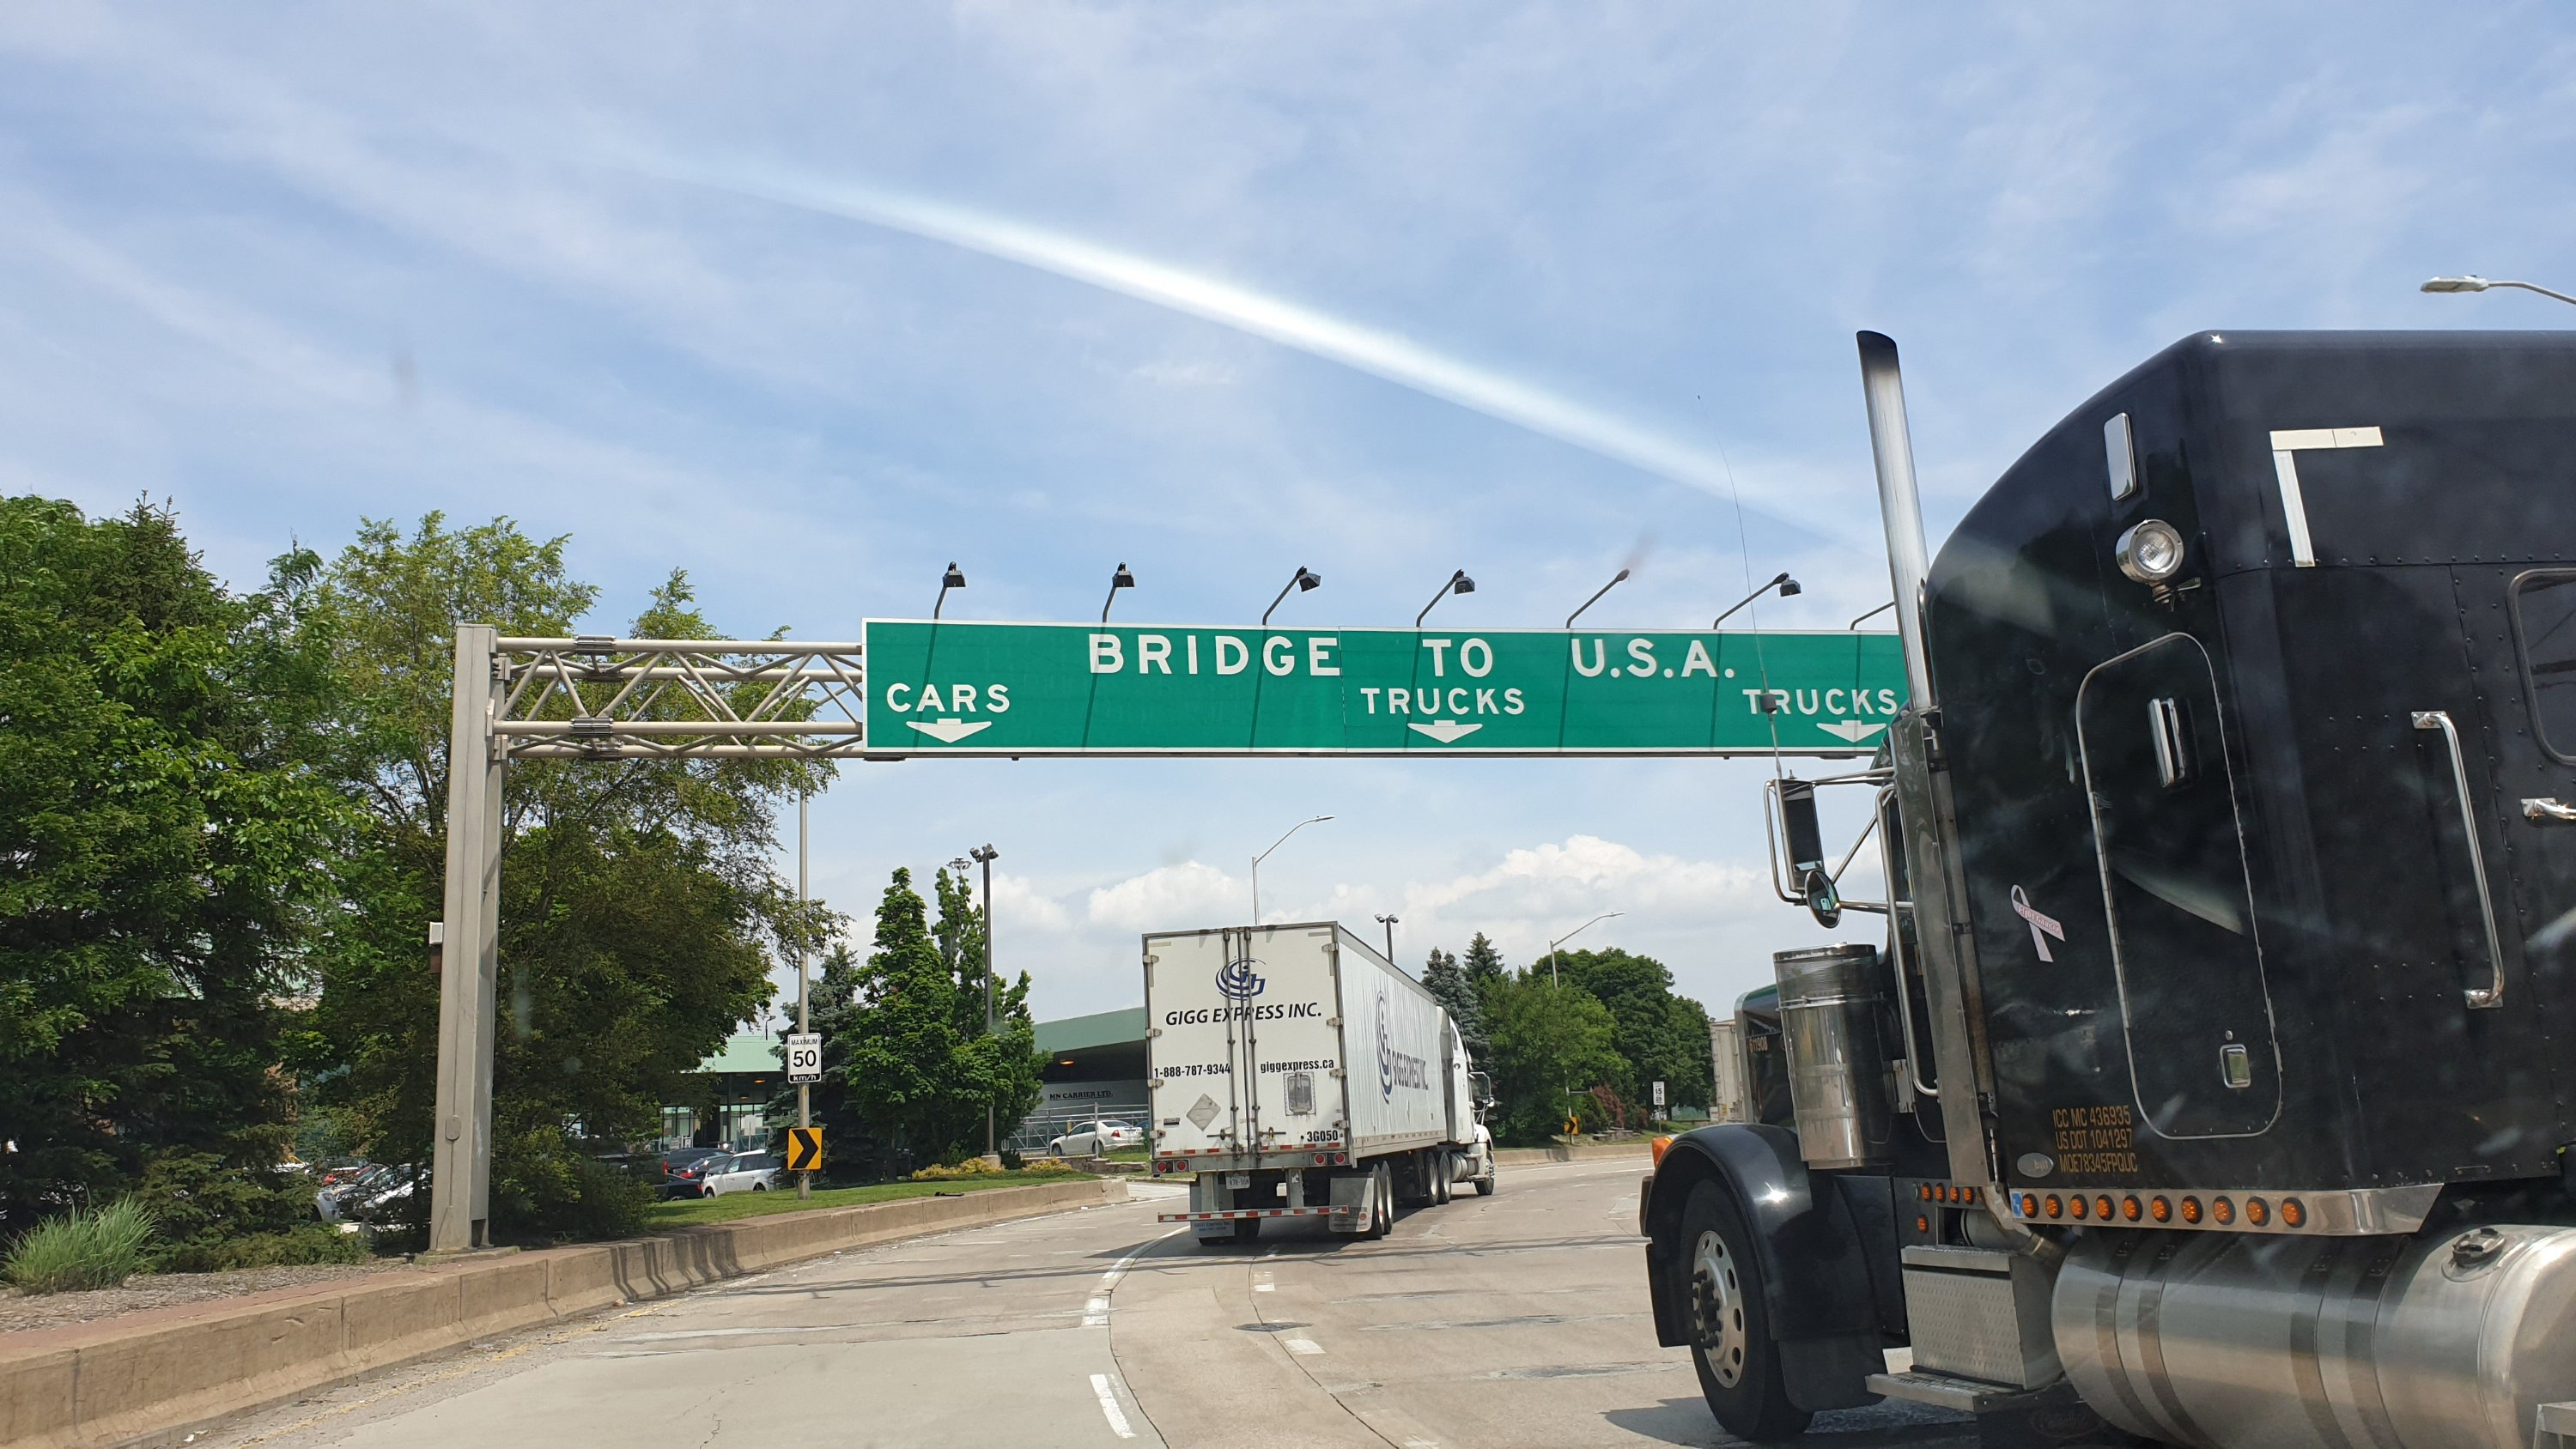 Border sign to USA from Canada at Ambassador Bridge